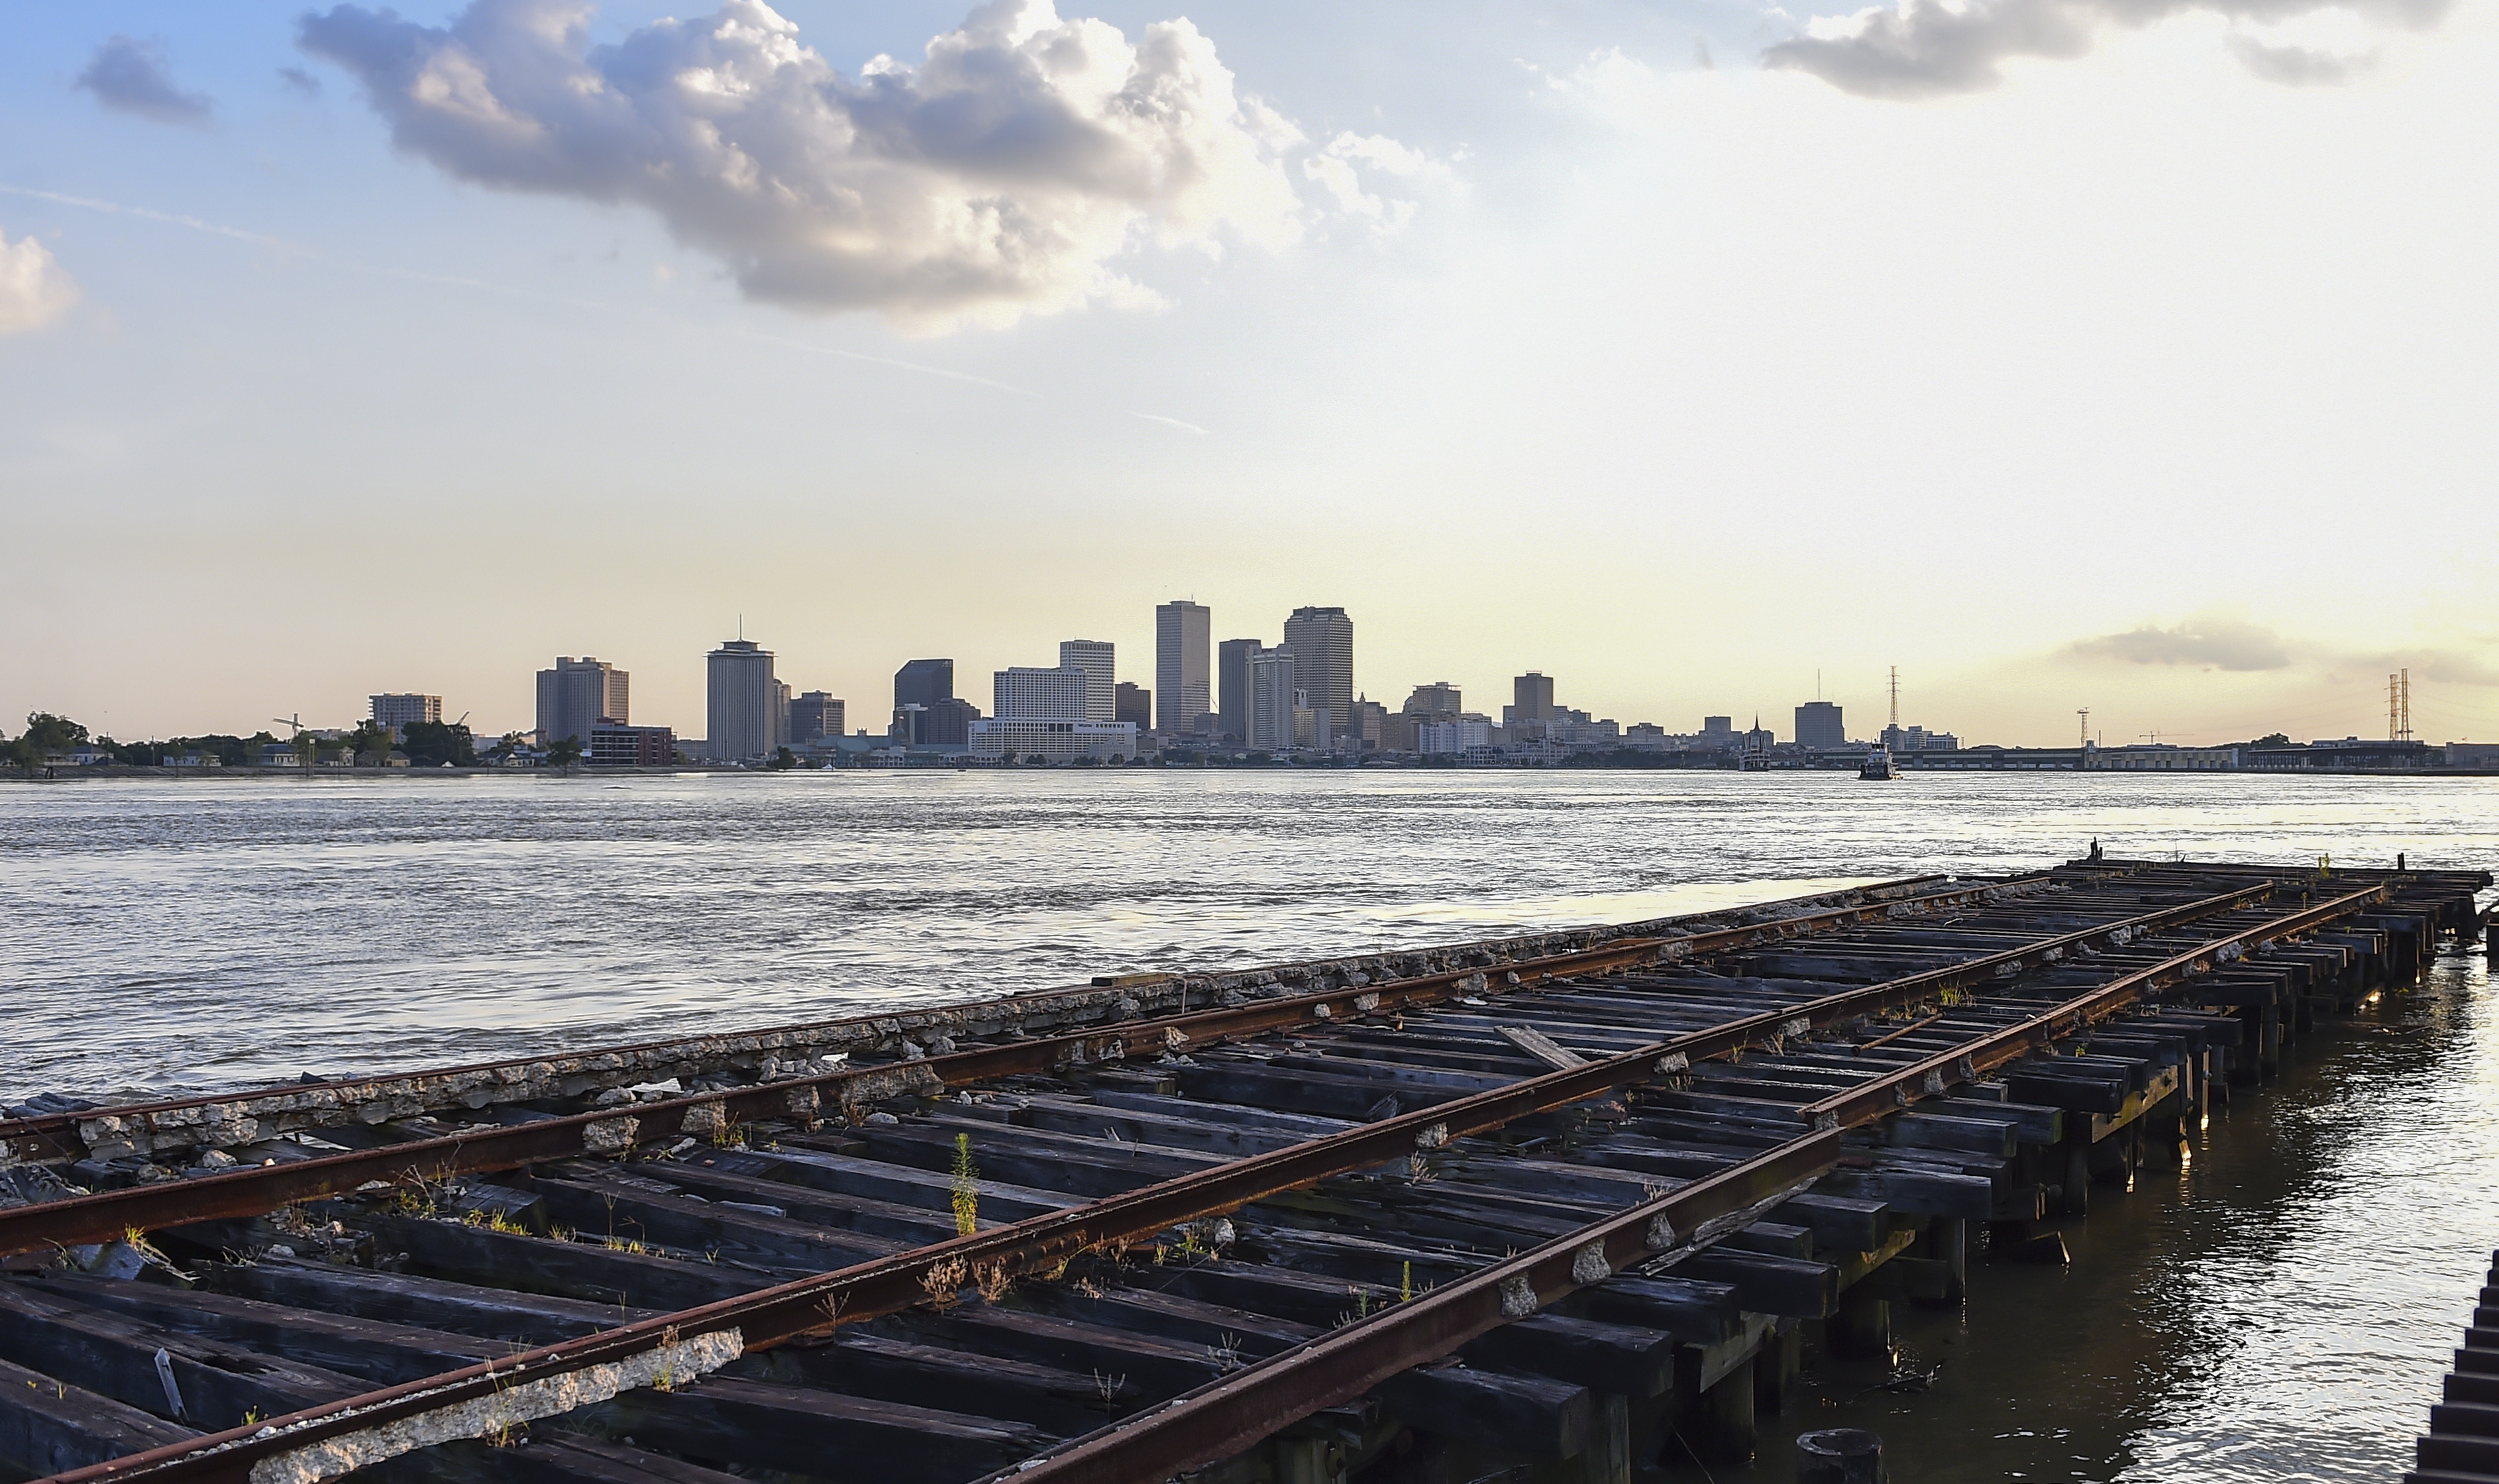 485509032-new-orleans-la-july-28-the-new-orleans-skyline-is-framed-wi